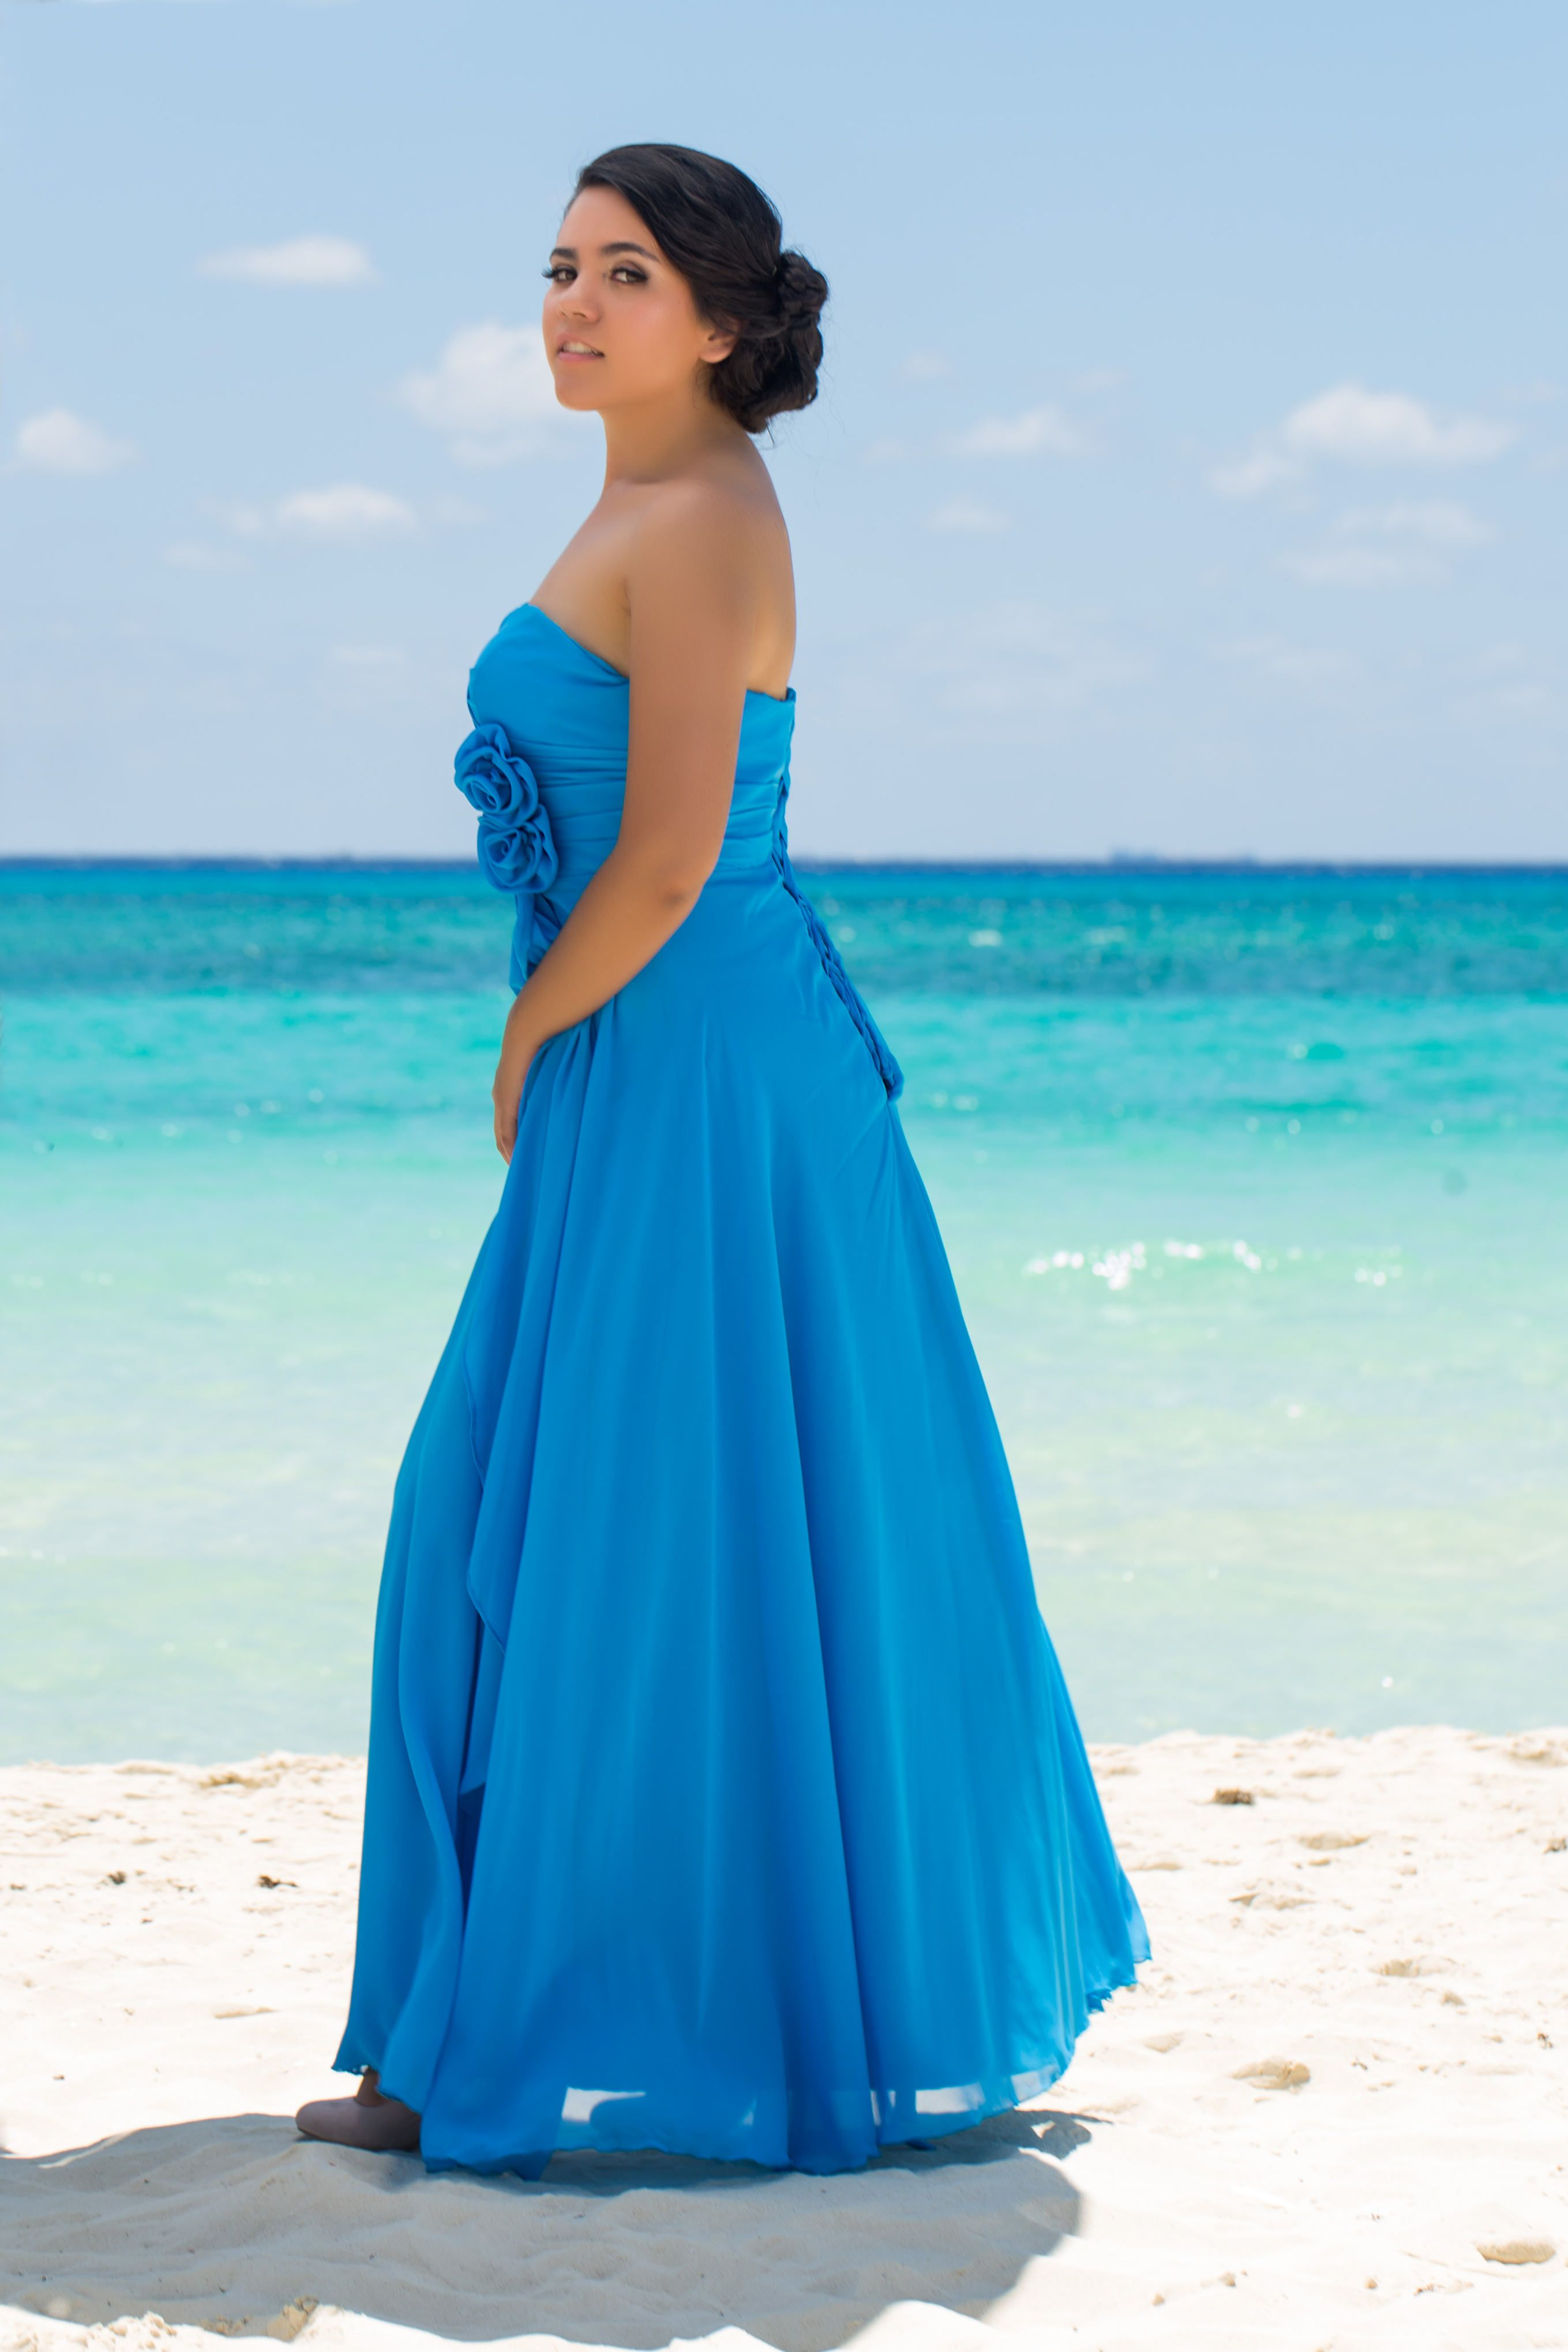 Rent your dress bridesmaid blue long dress perfect for your